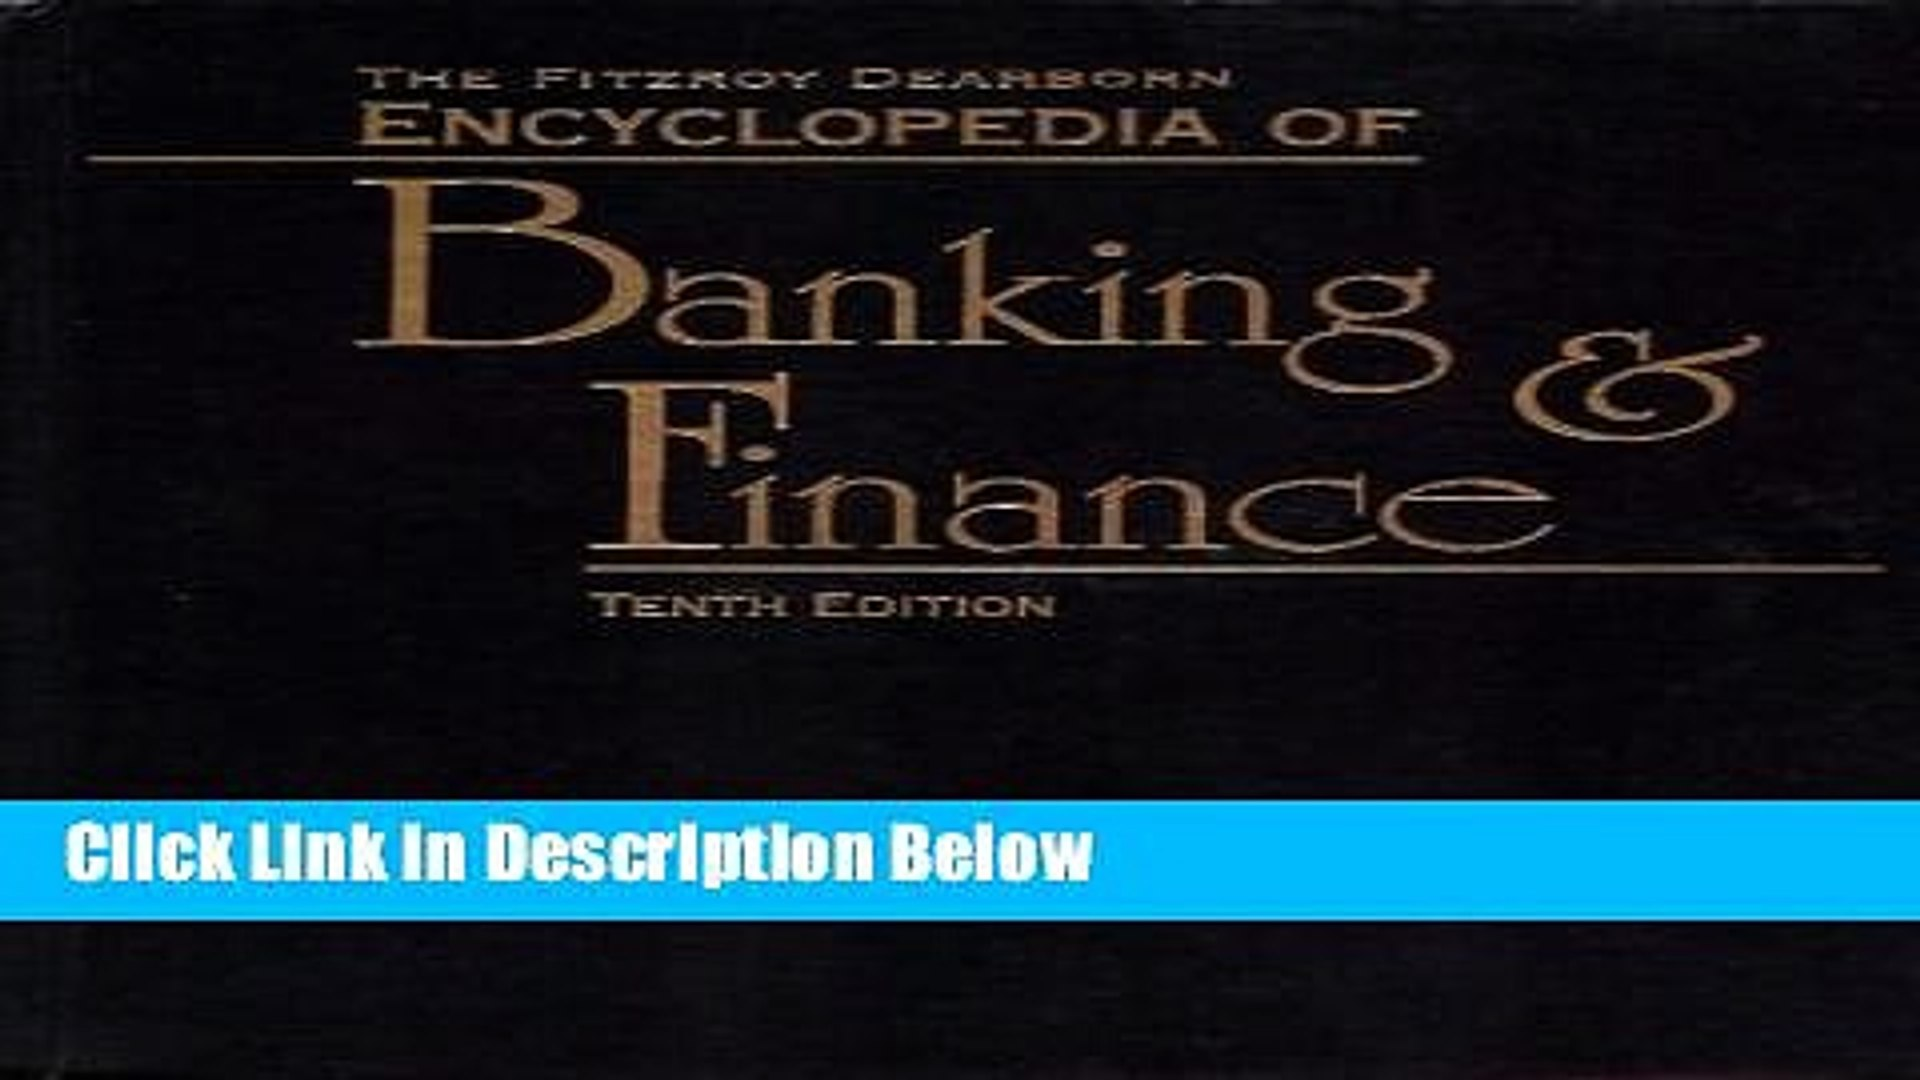 Download Encyclopedia of Banking and Finance [Online Books]